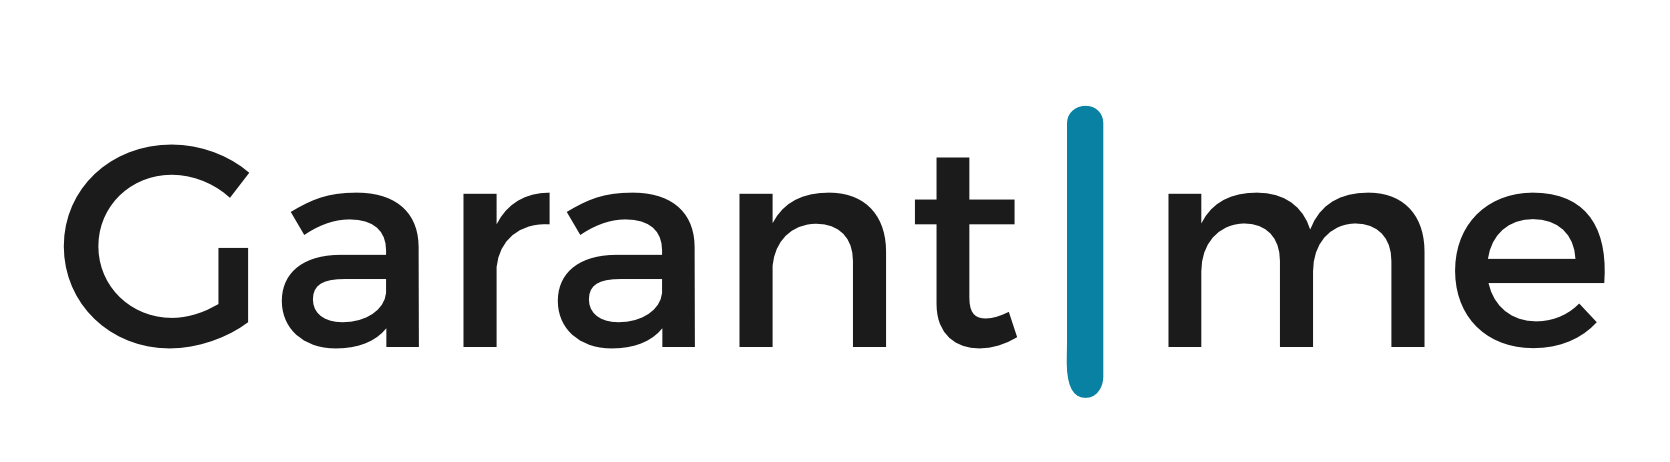 Garantme_black_logo_no_background-5